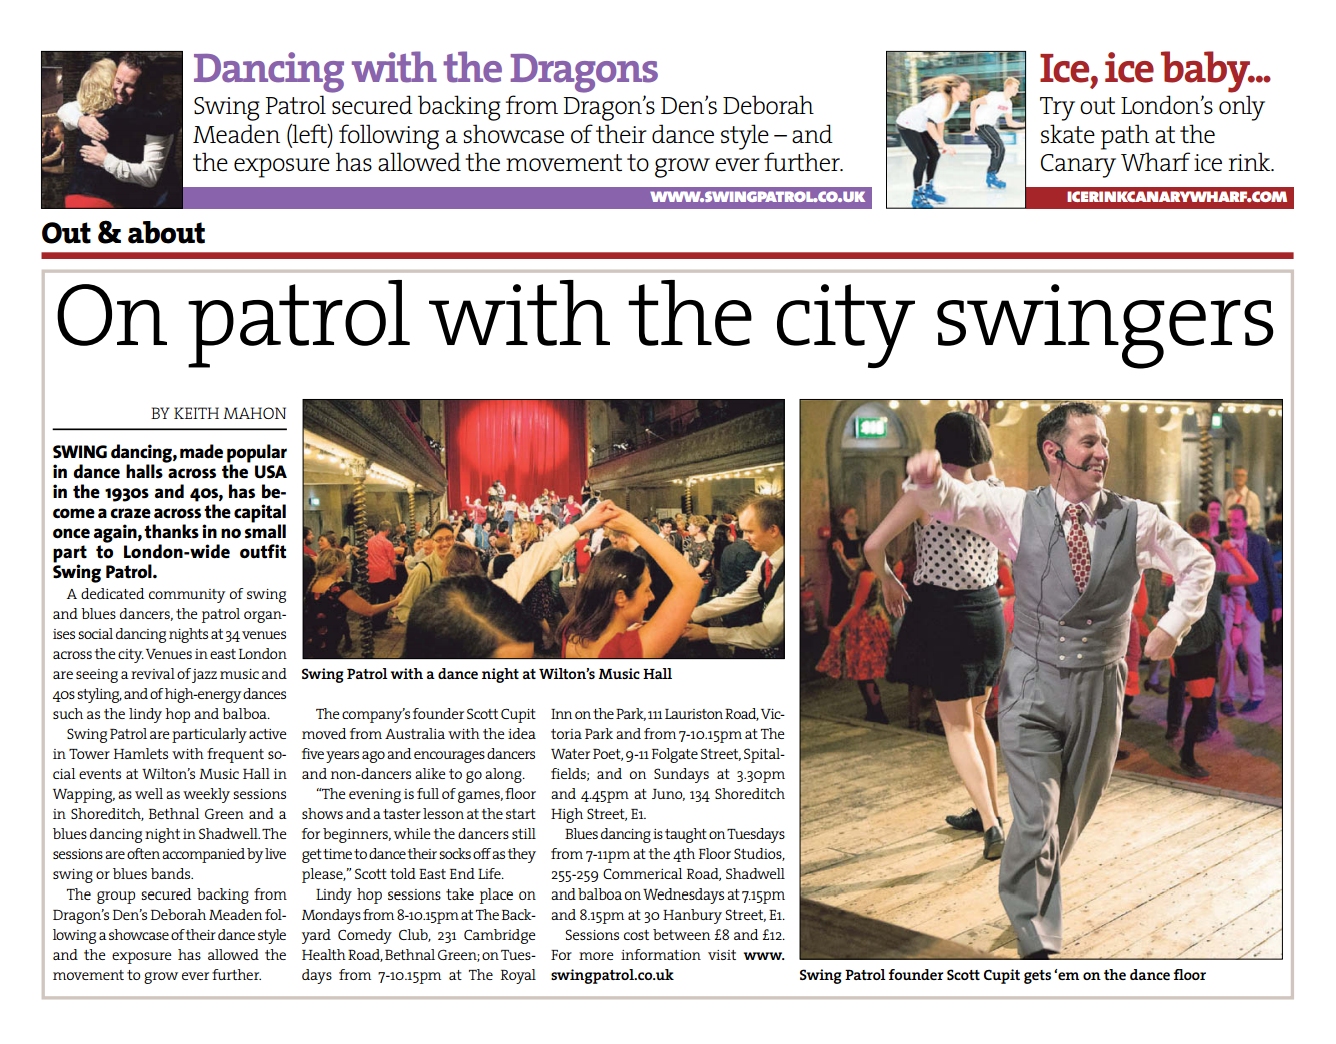 East End Life, 12 January 2015